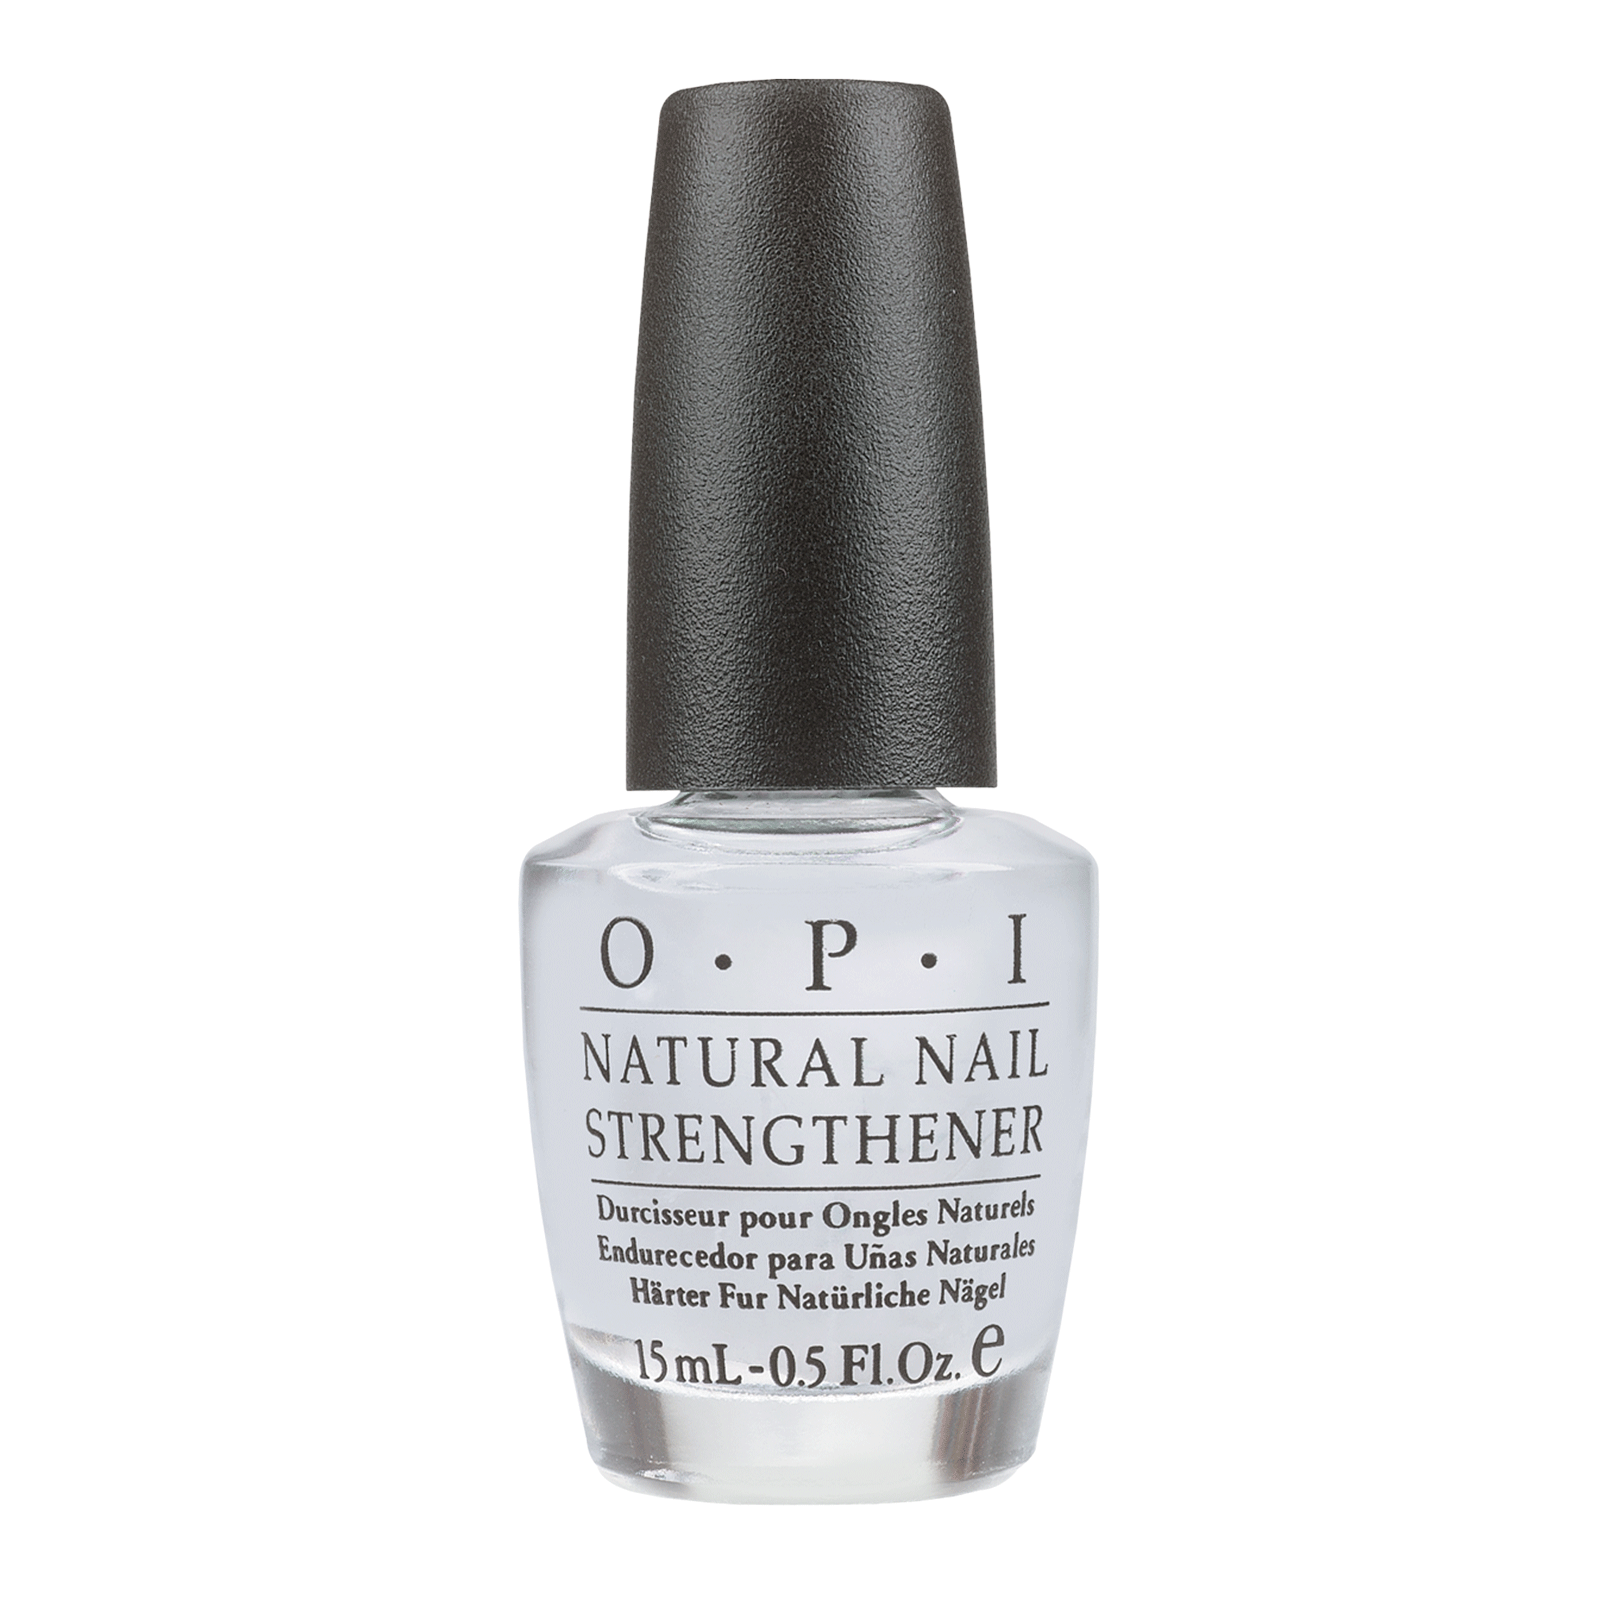 Natural Nail Strengthener - OPI | CosmoProf